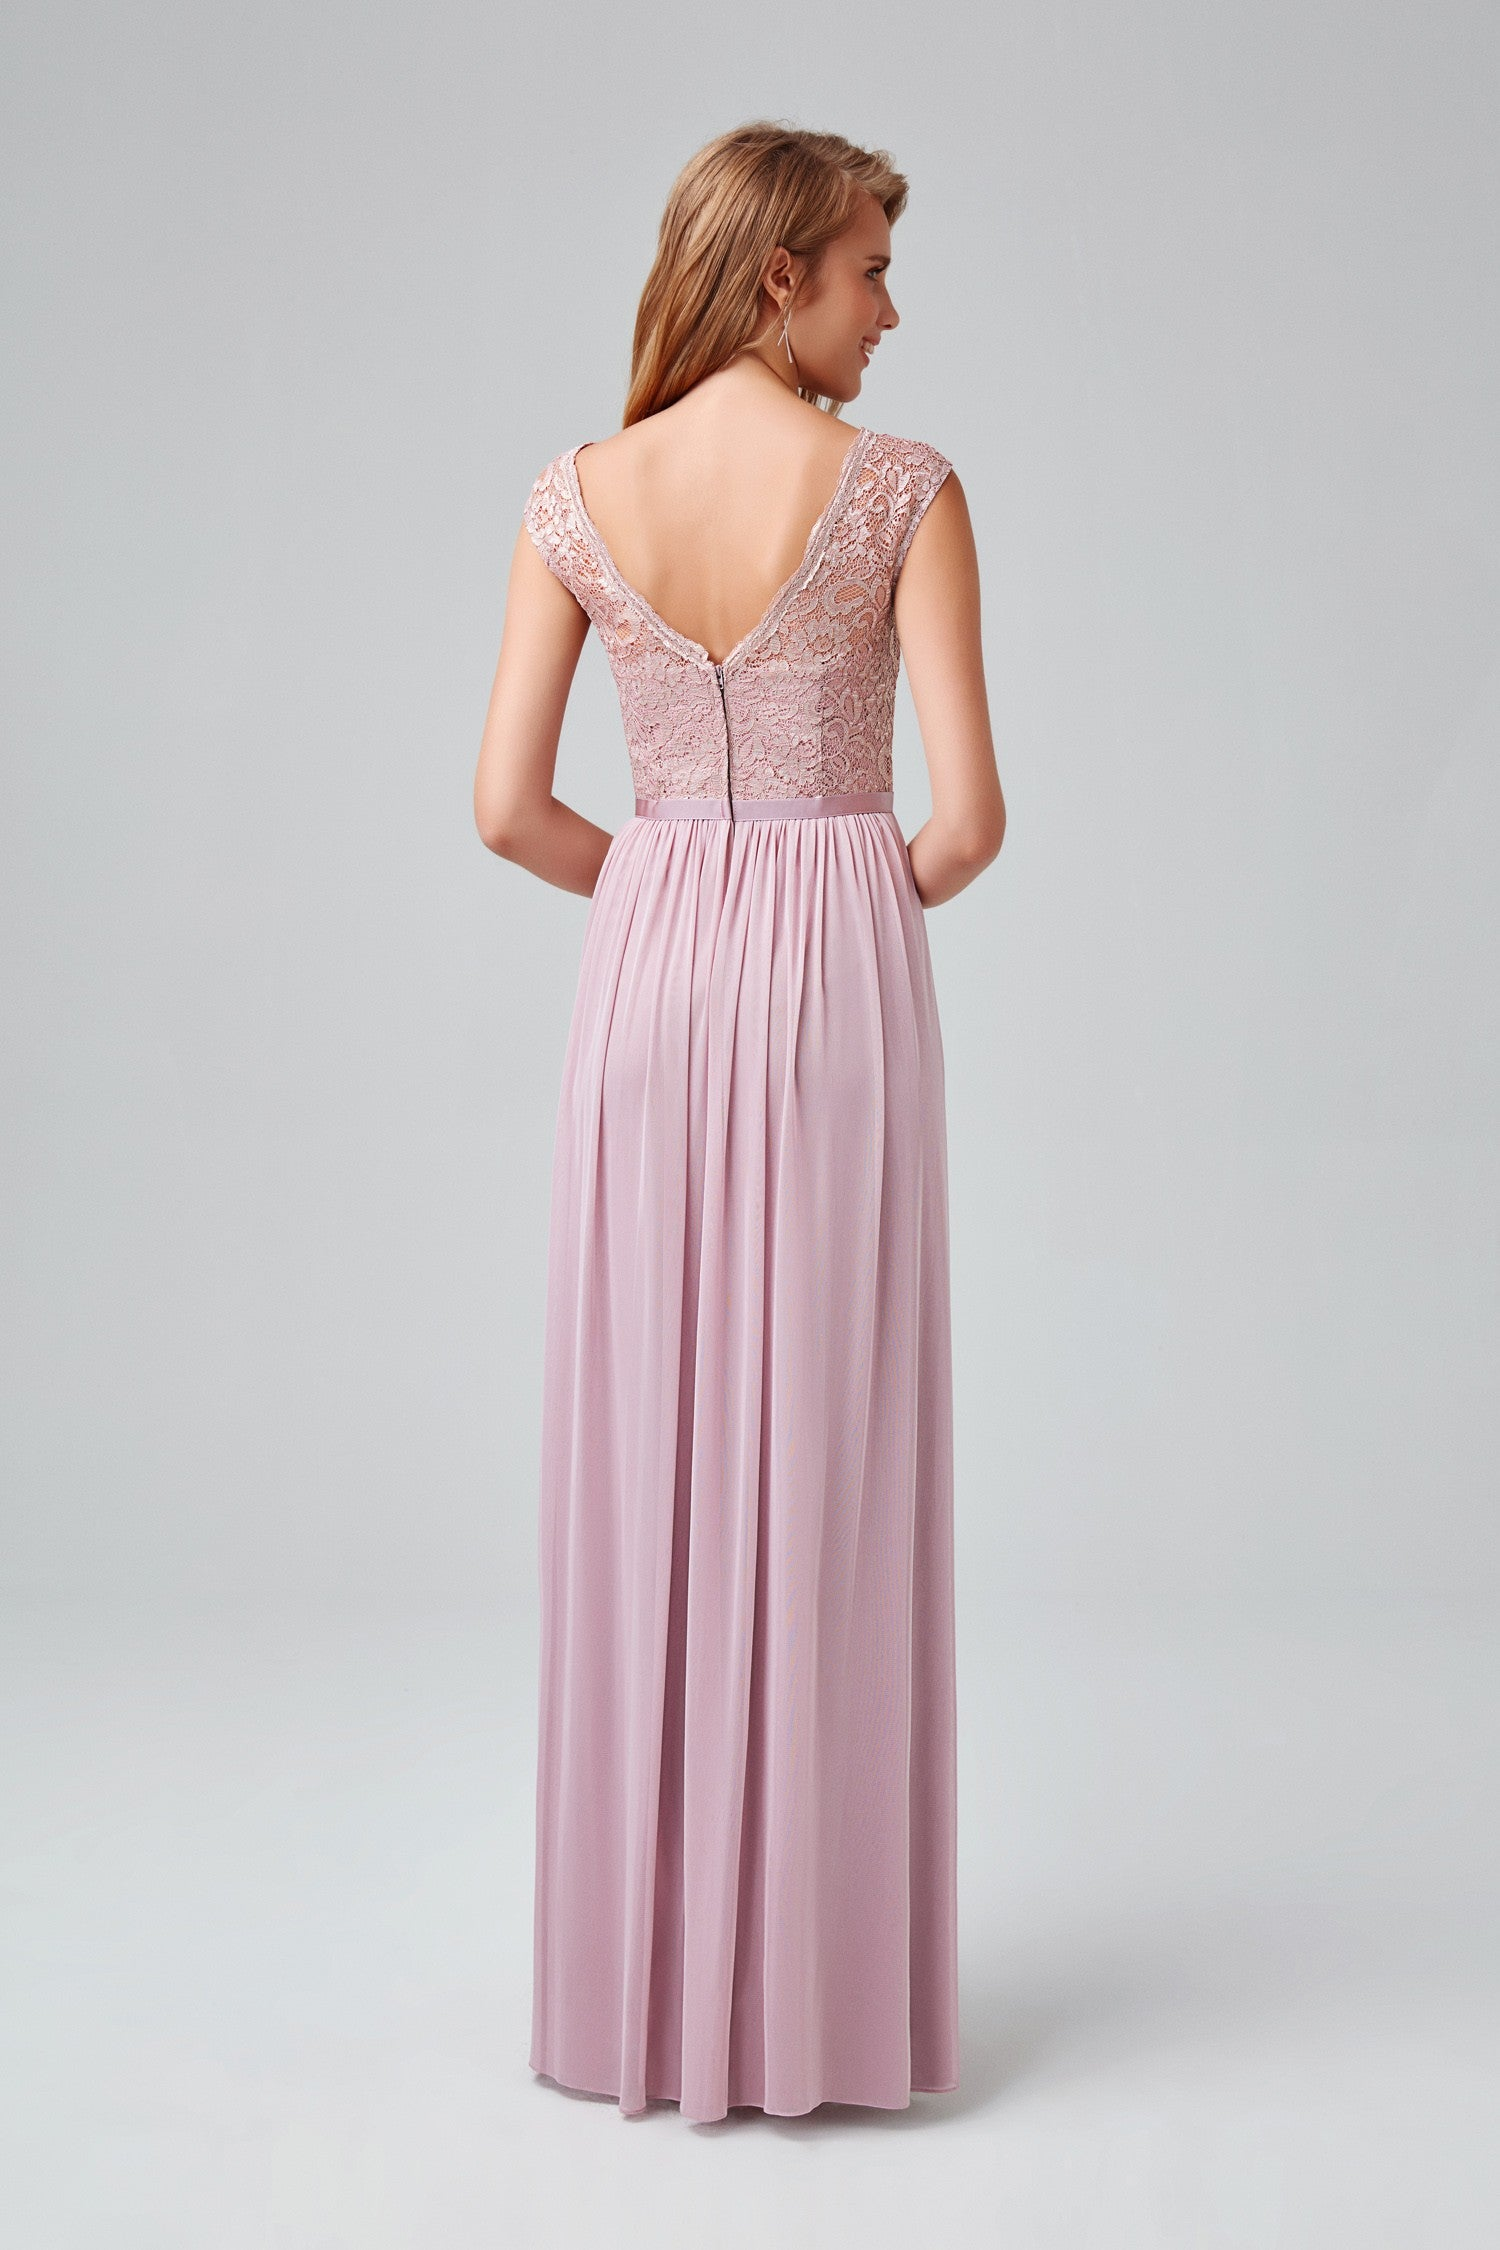 Long Bridesmaid Dress With Lace Bodice F19328m